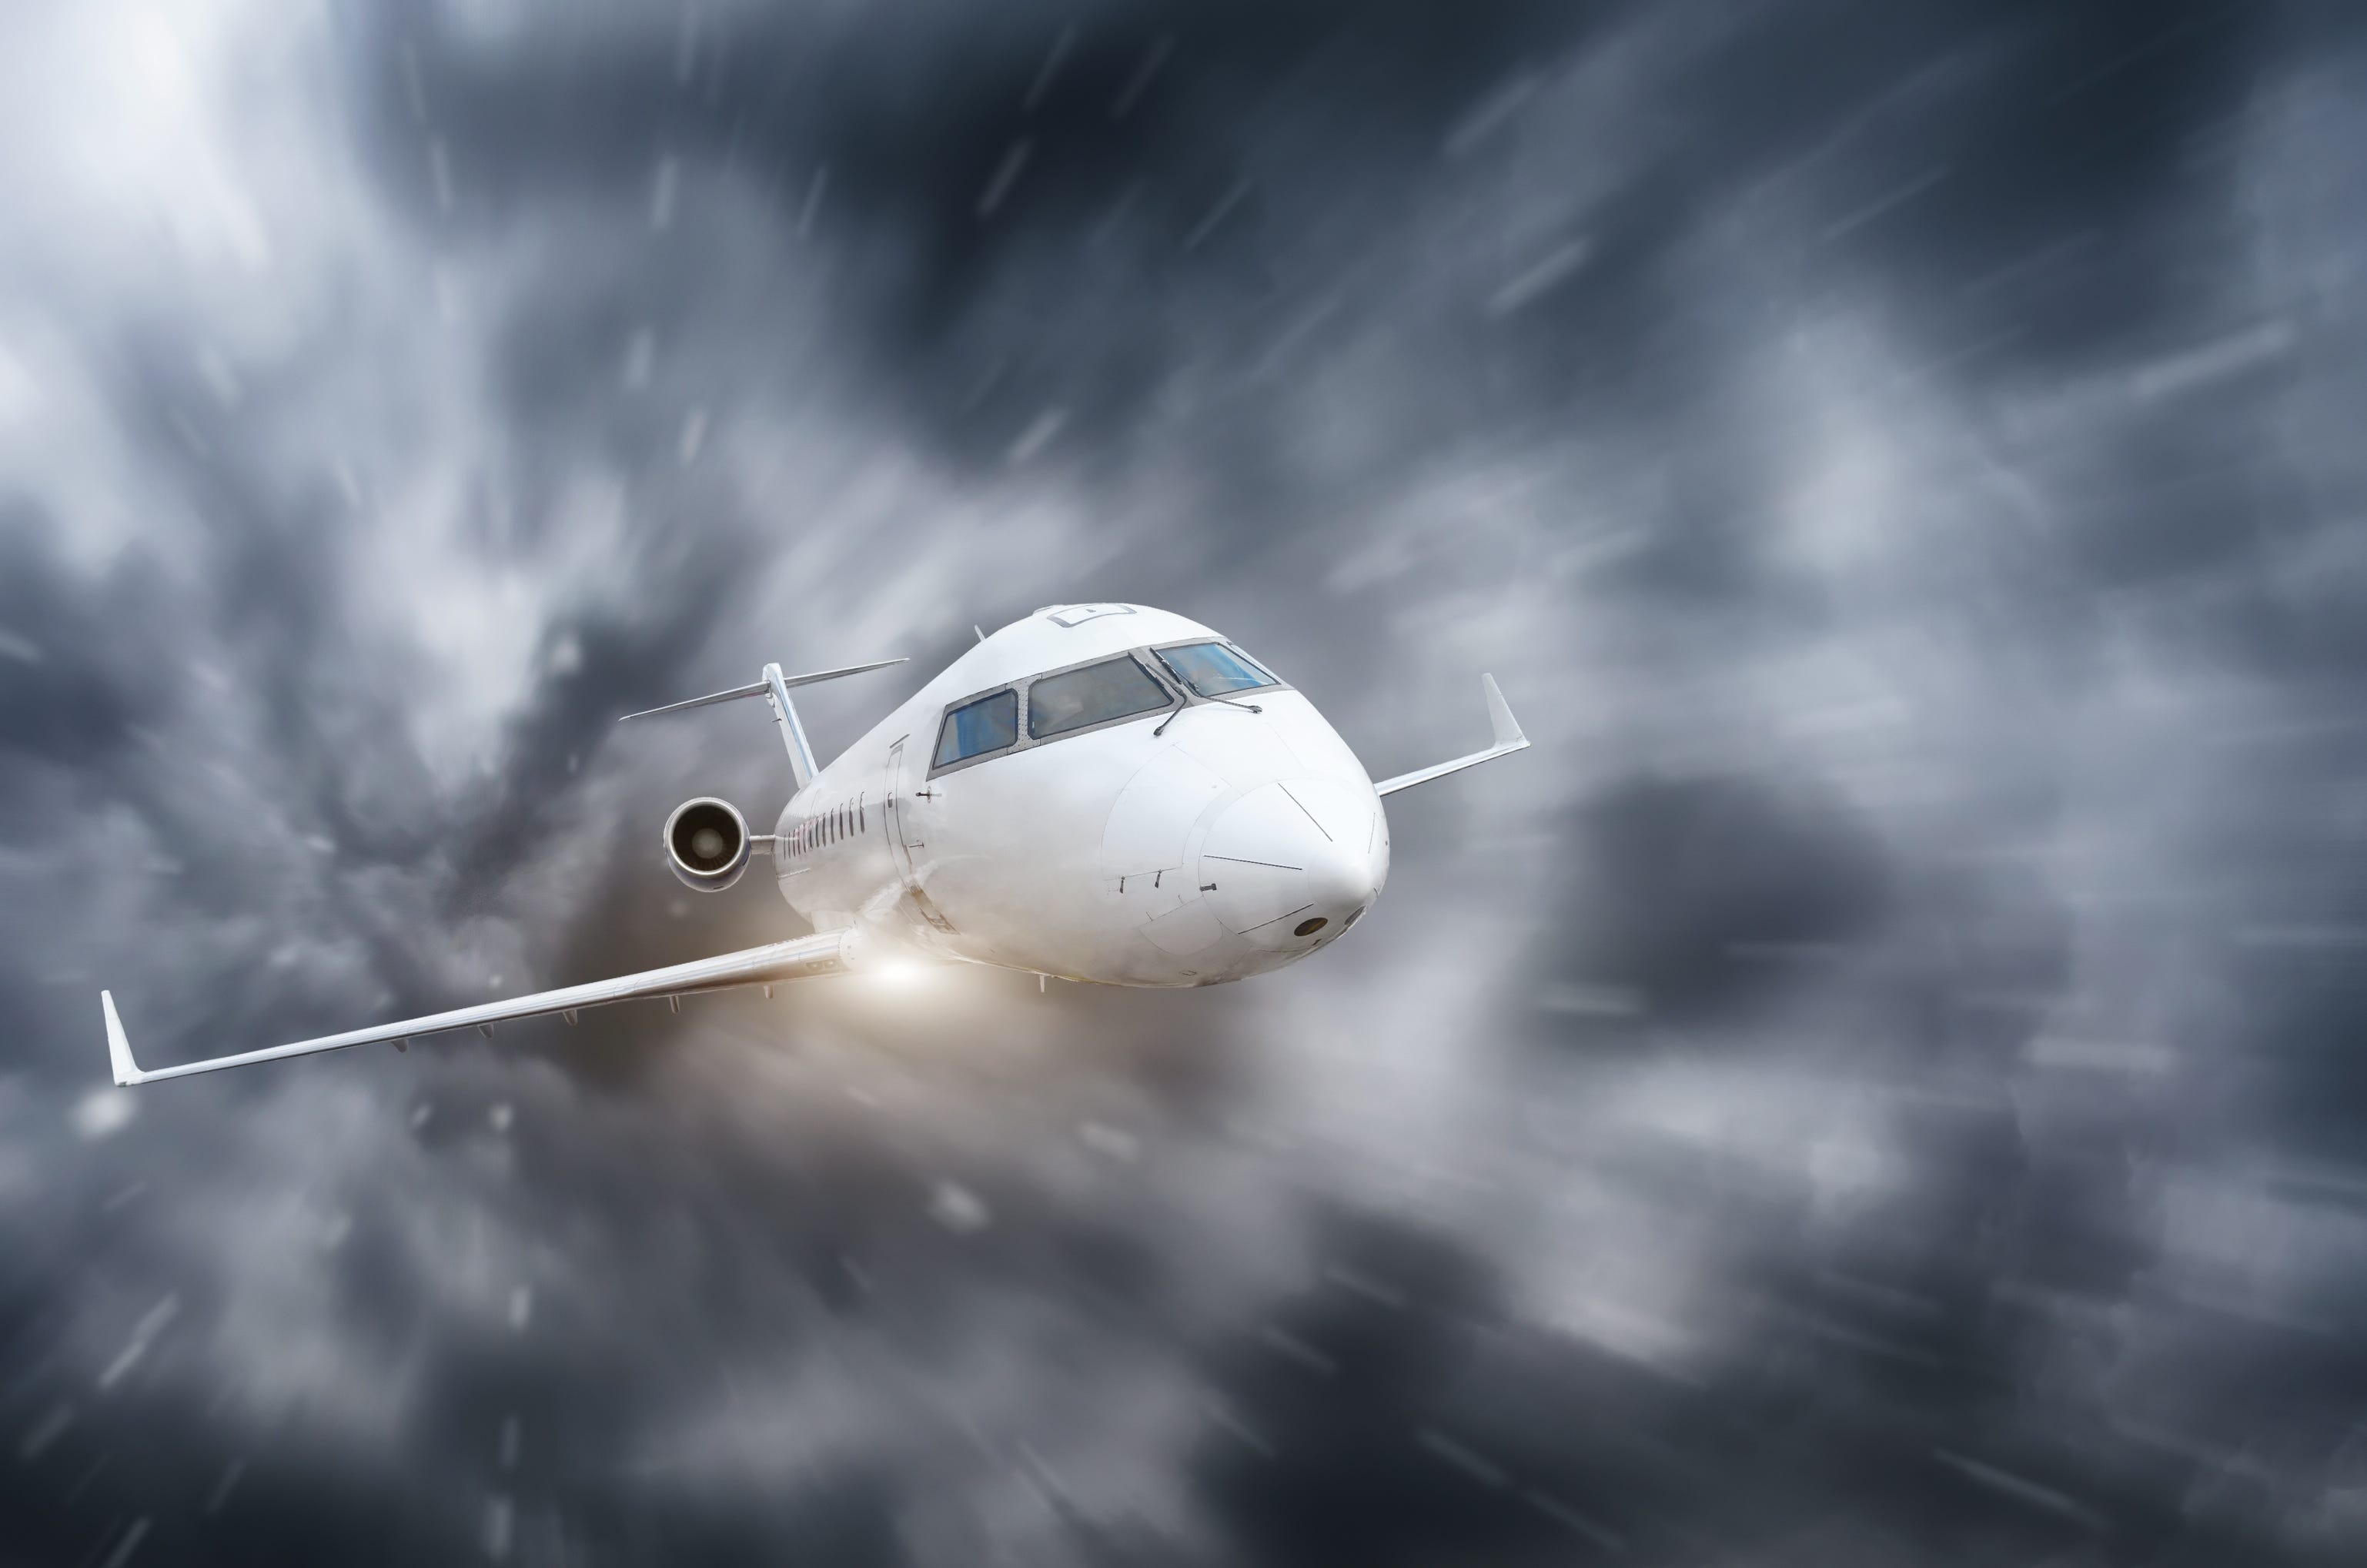 What causes plane crashes? Is it human error, weather or aircraft issues?